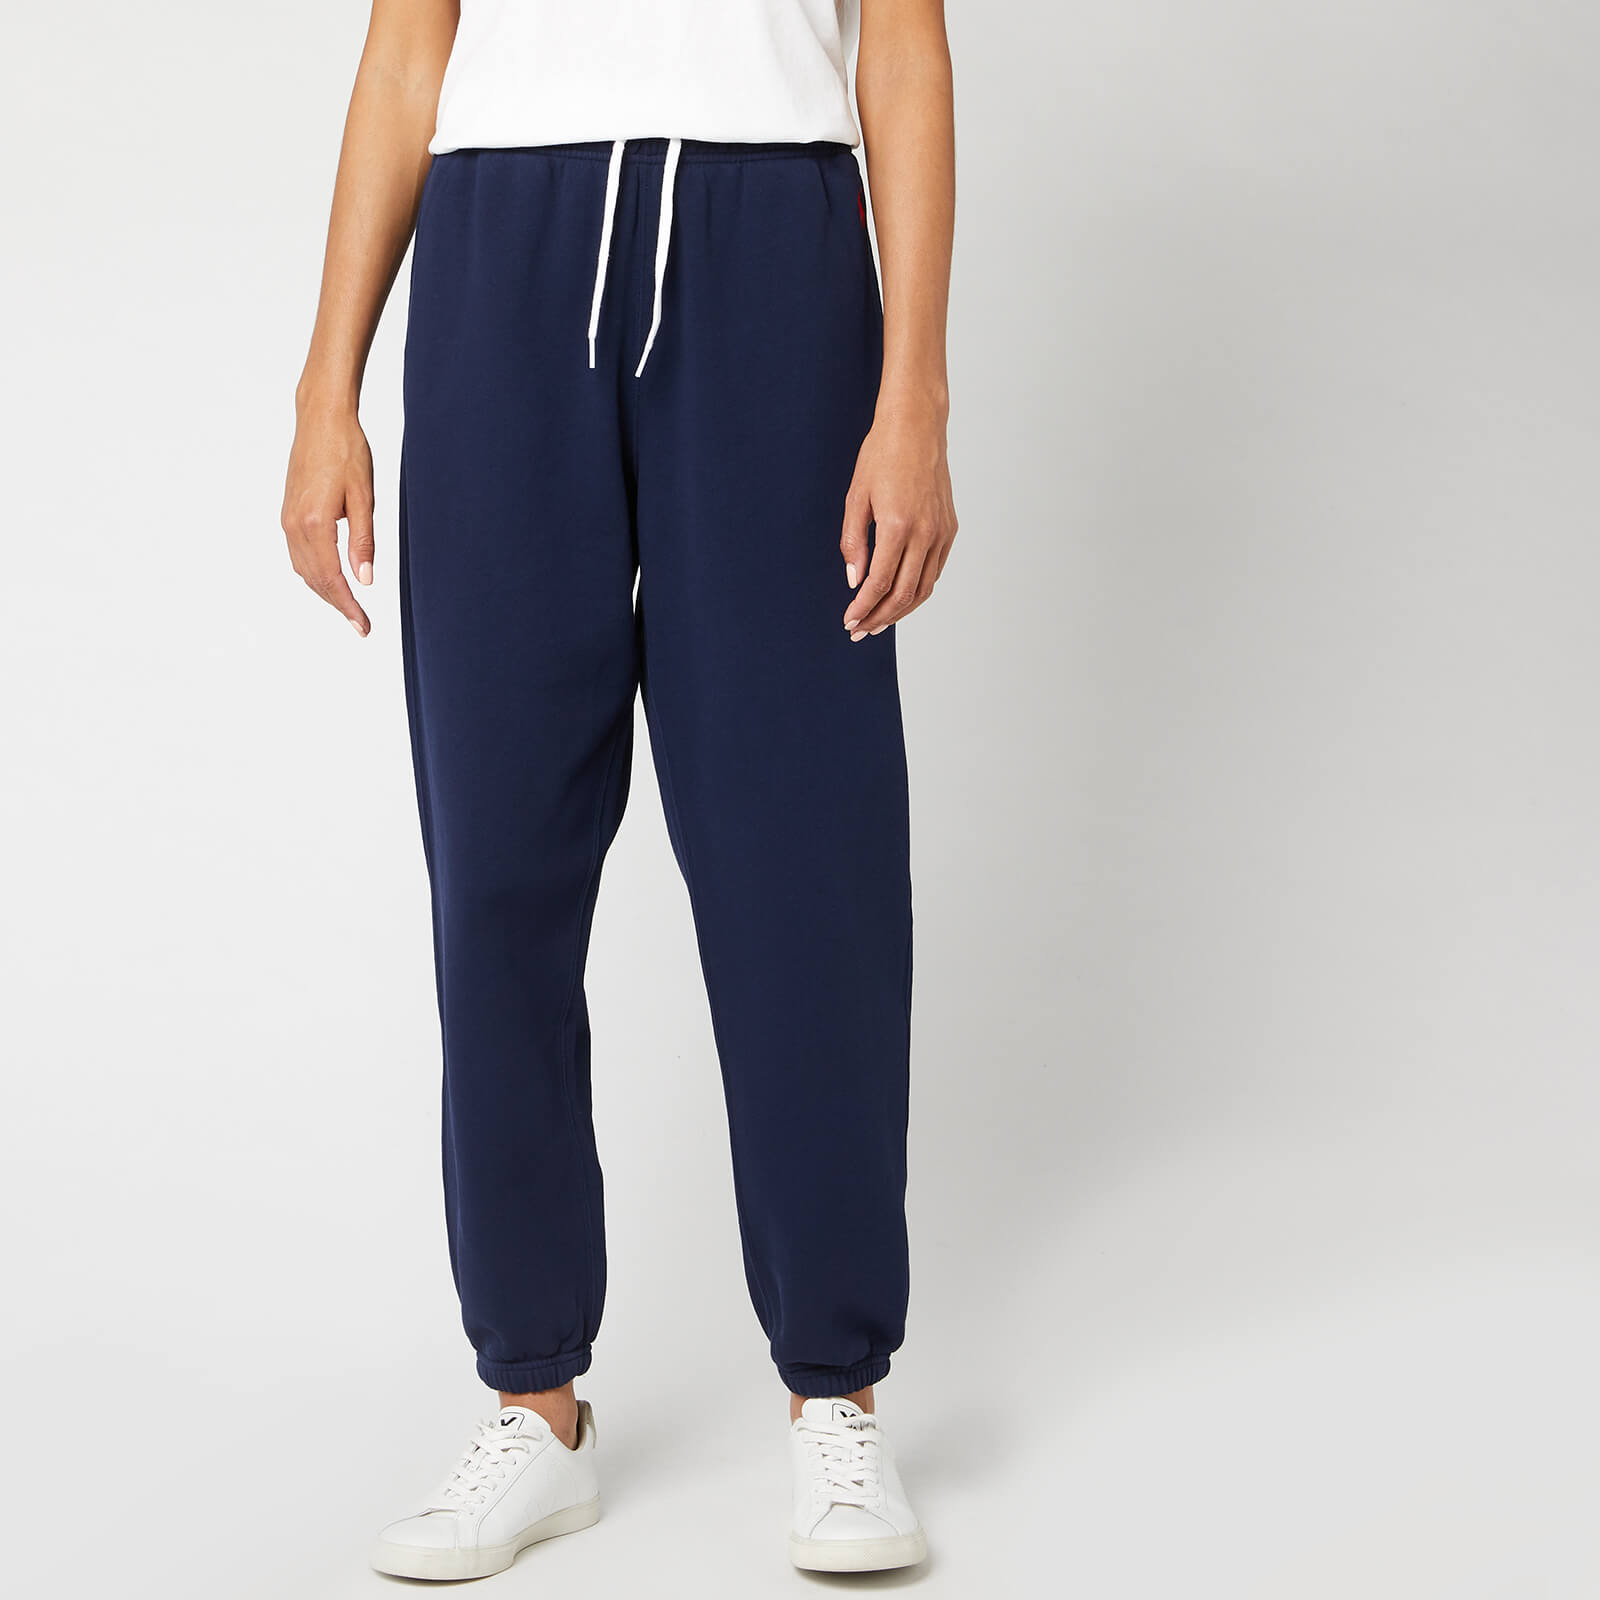 super service pretty and colorful latest style Polo Ralph Lauren Women's Po Sweatpants - Cruise Navy